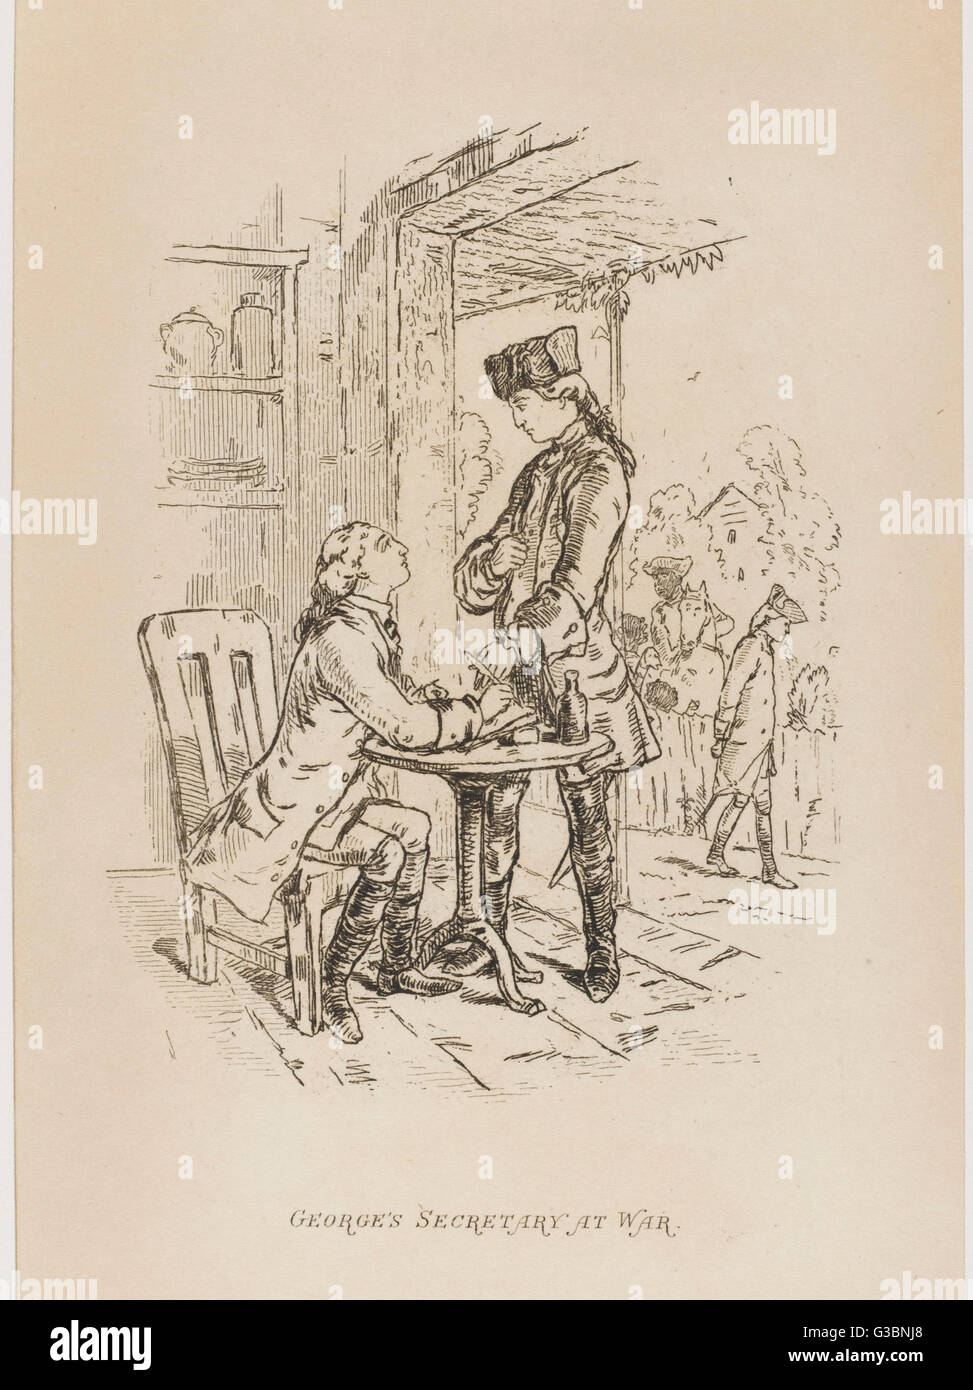 THE VIRGINIANS During the American  Revolutionary War, George  gives instructions to his  secretary.       Date: Stock Photo